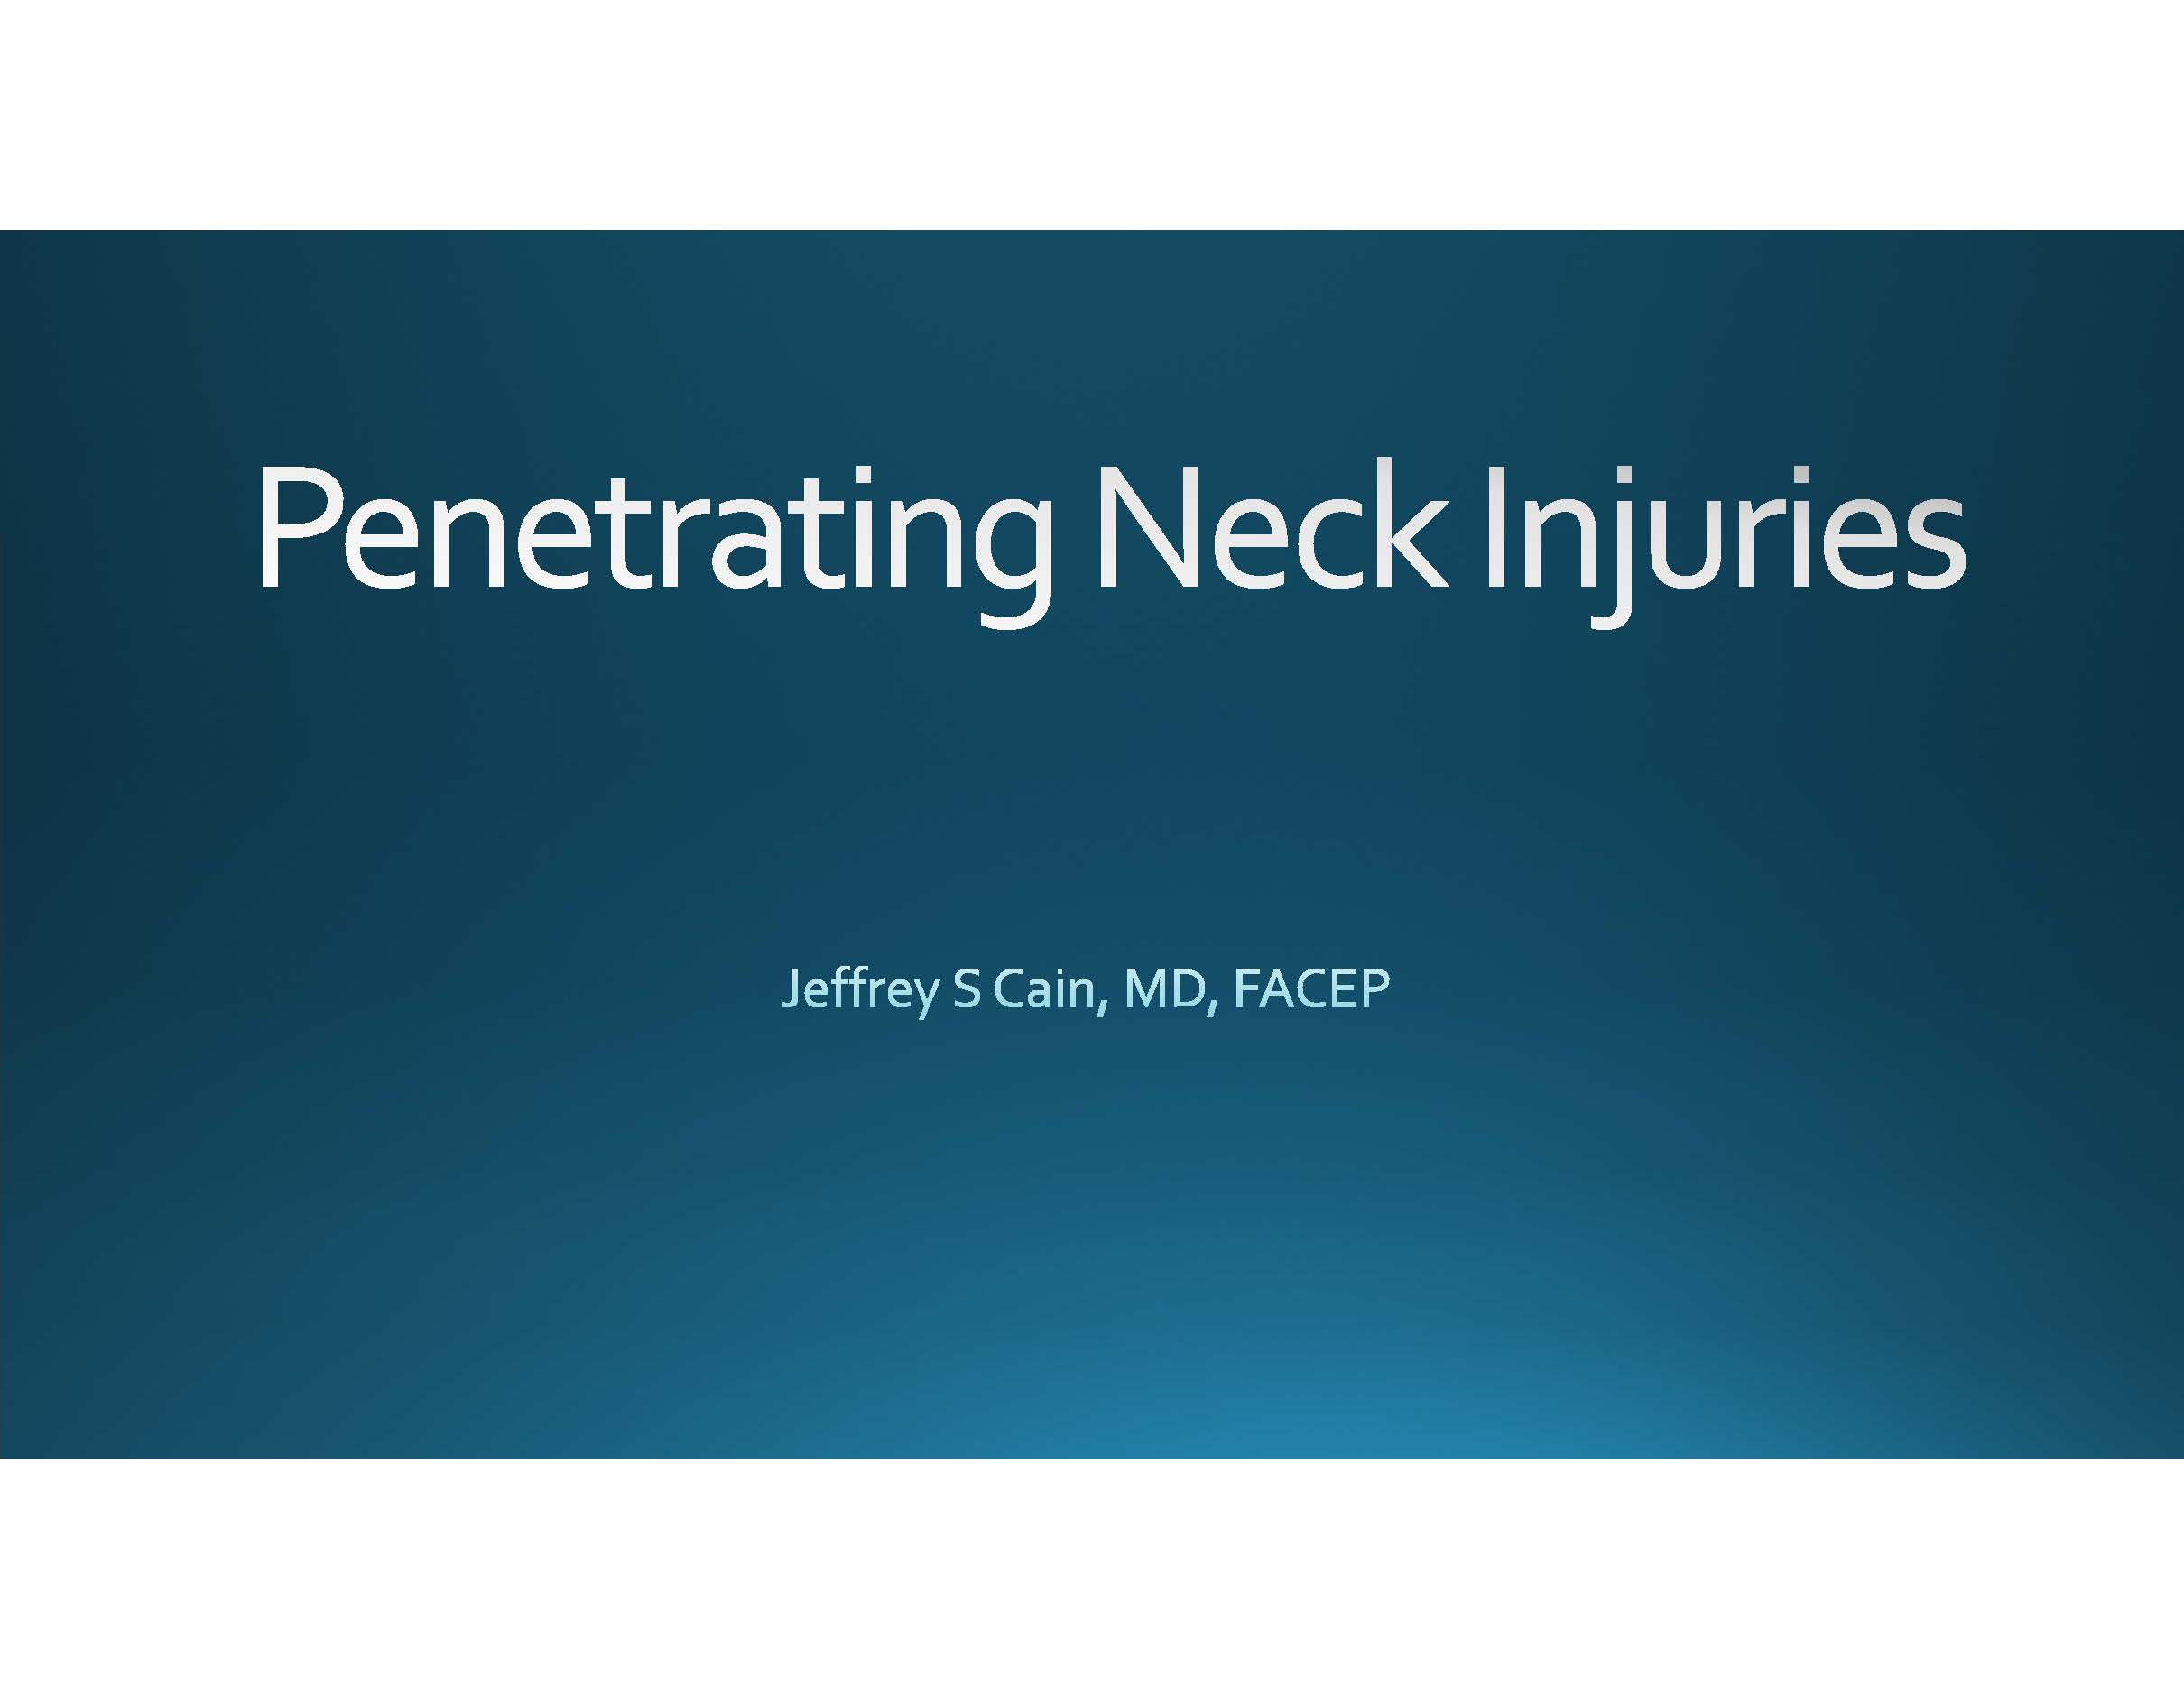 Penetrating Neck Injuries Presentation